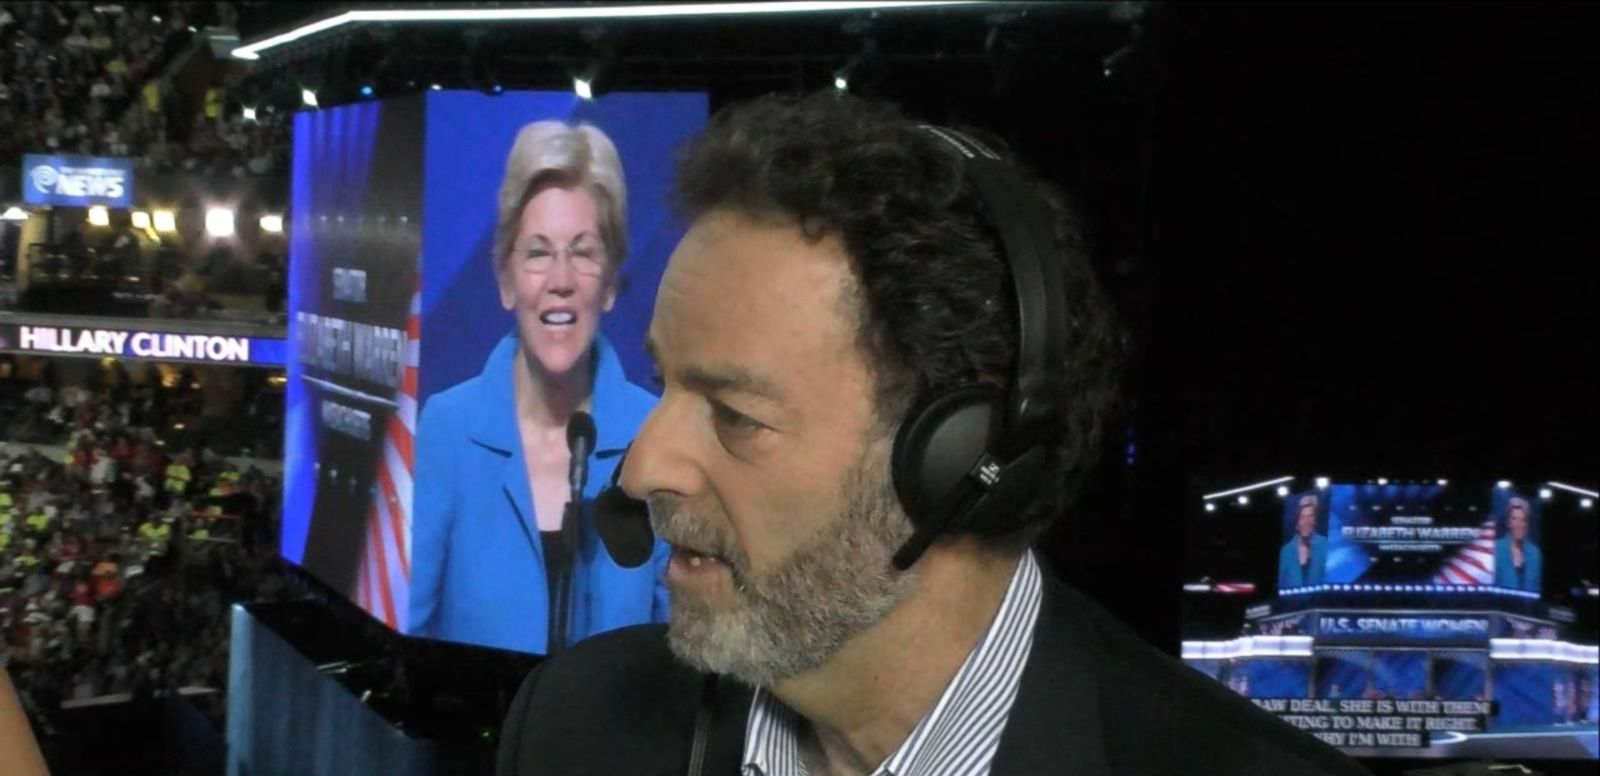 VIDEO: Clinton Pollster Joel Benenson Defends Lack of Press Conferences